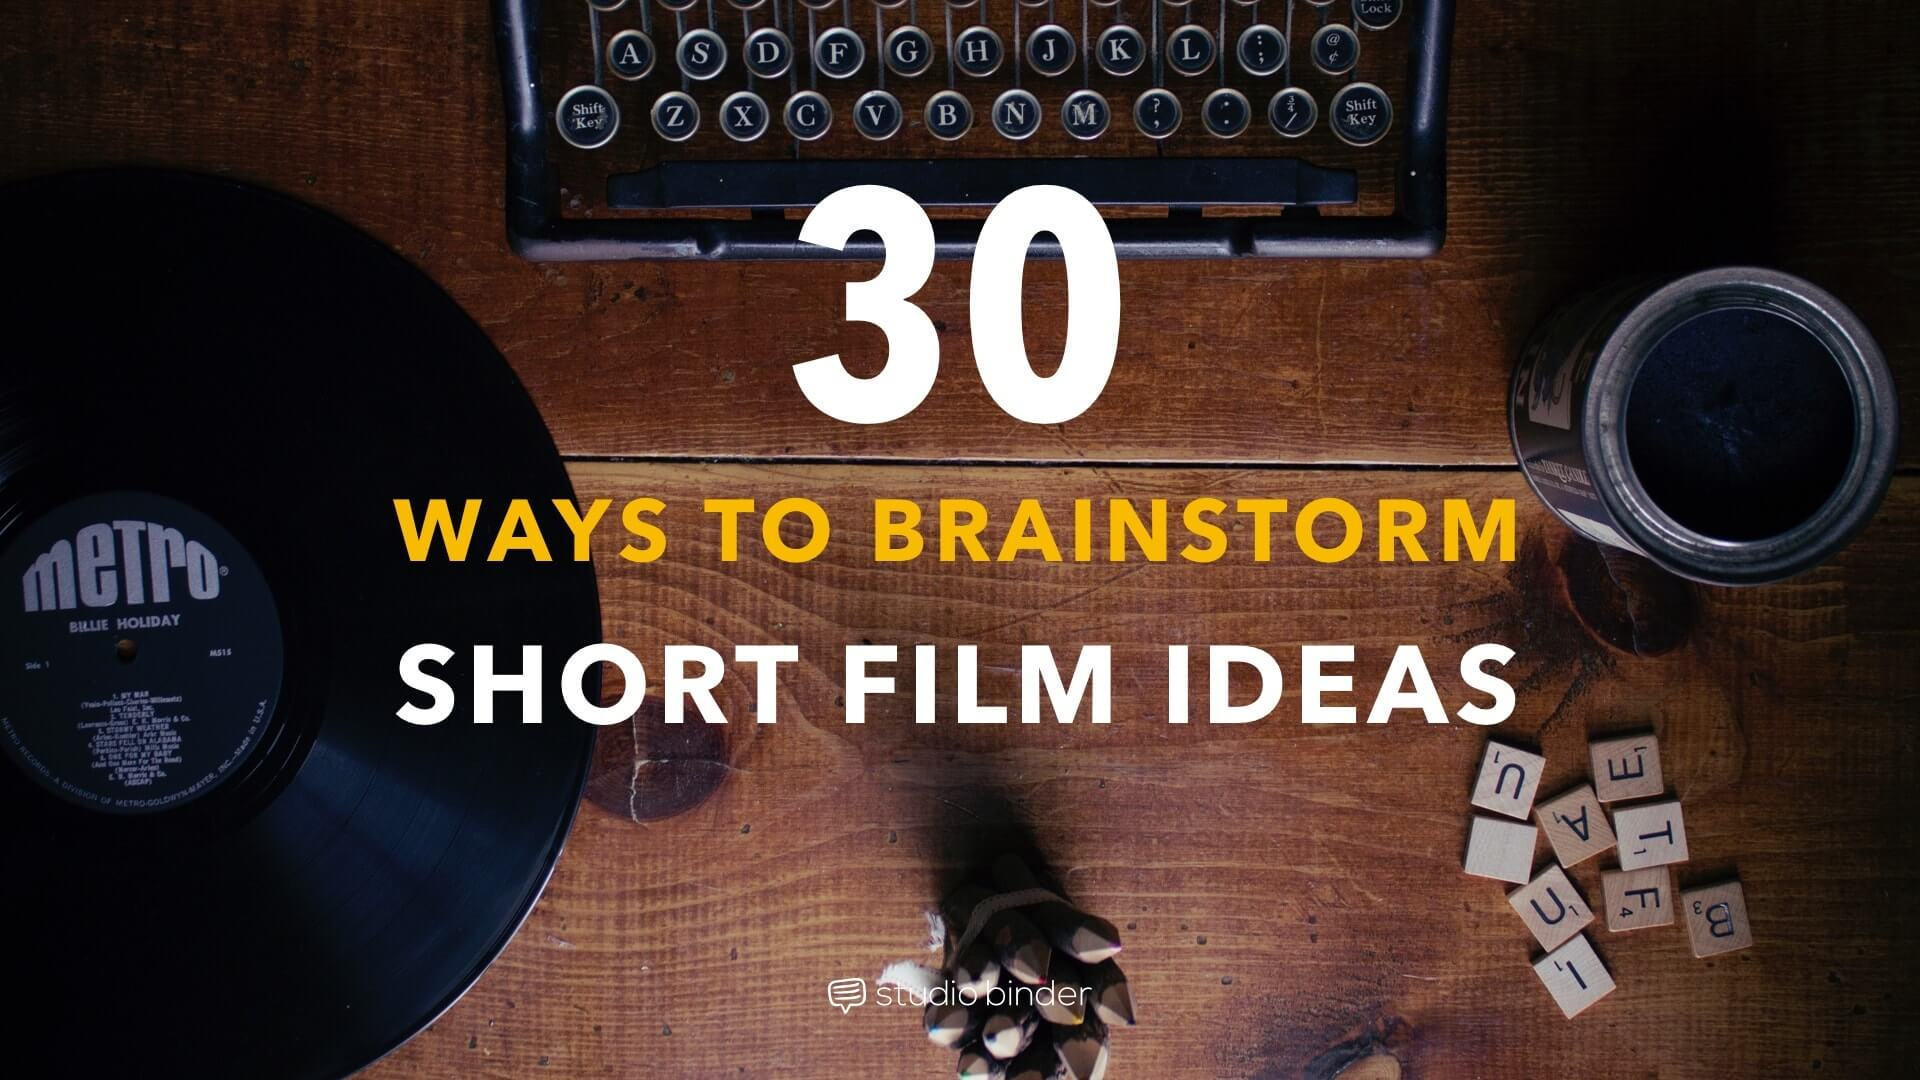 30 ways to brainstorm short film ideas you can actually